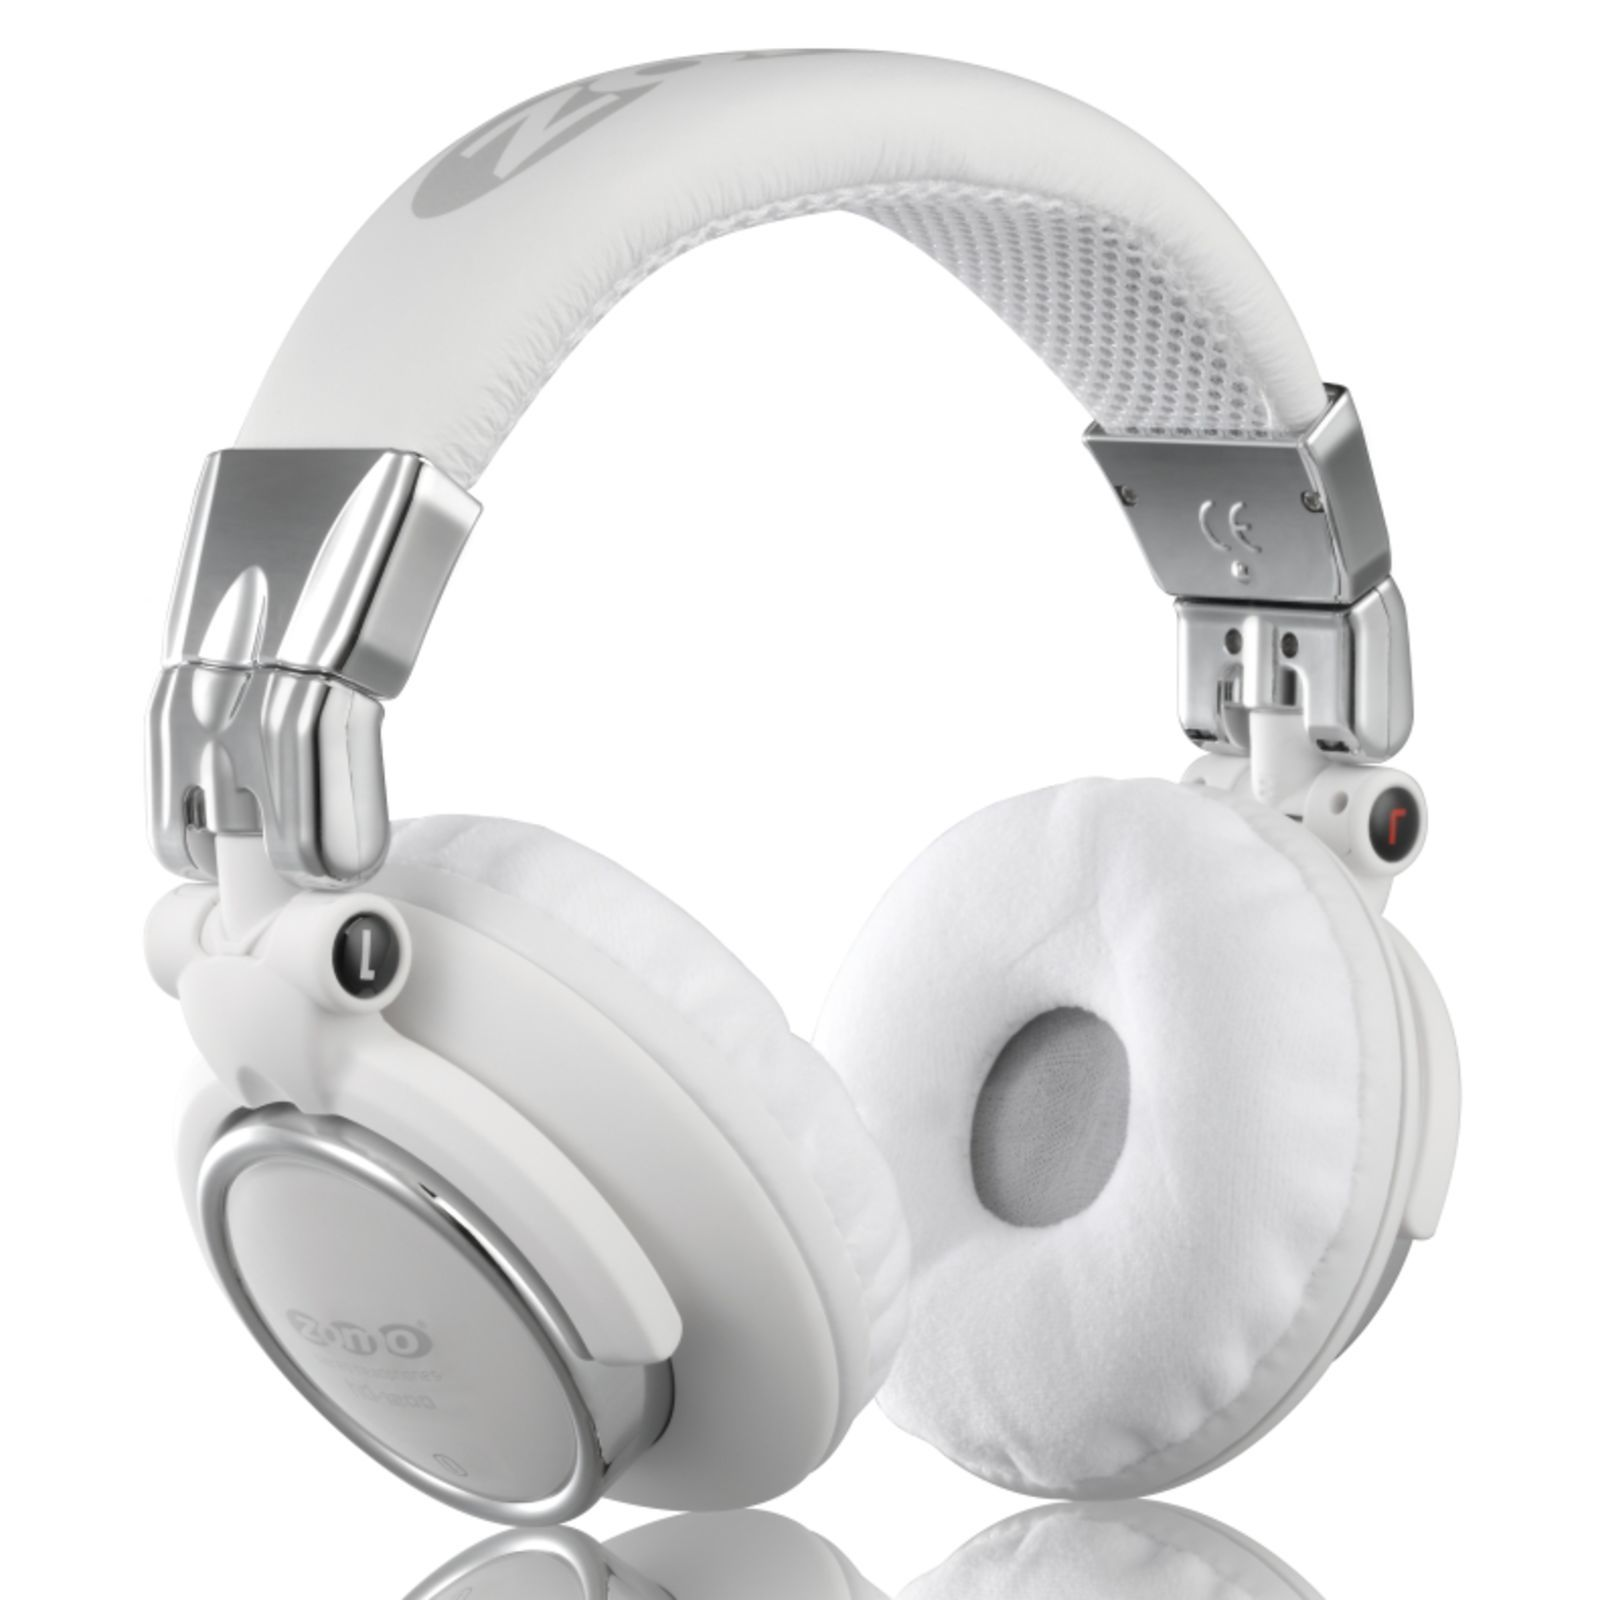 Zomo HD1200 wit Crome Stereo Headphones Productafbeelding